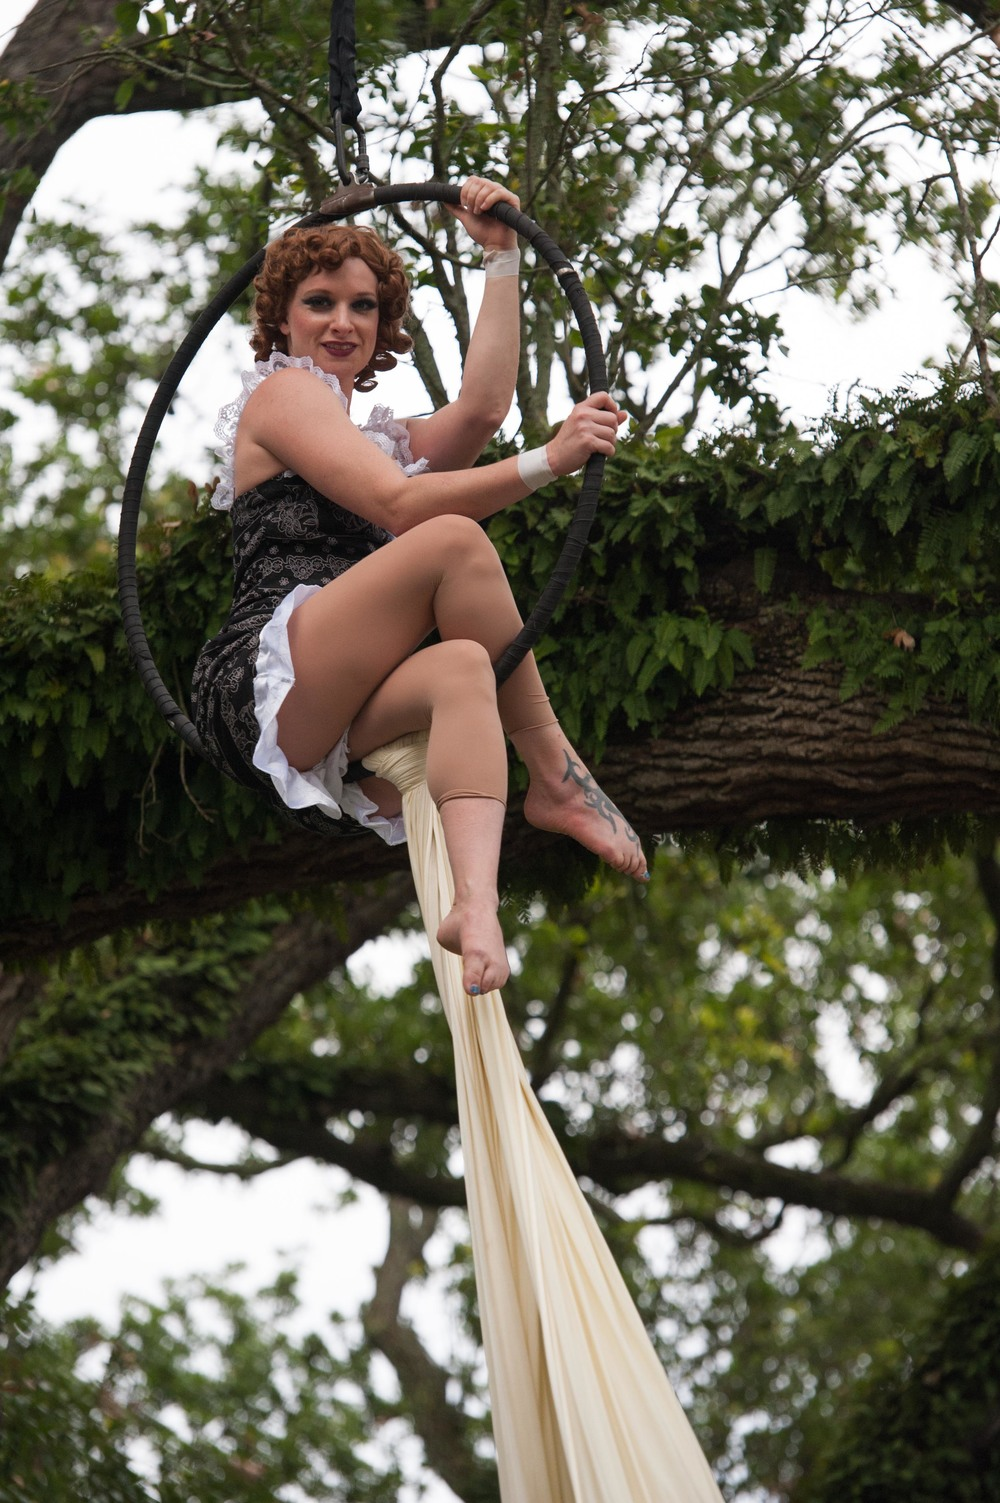 NEW ORLEANS, LA - May 14, 2014: Annie Sloan (photo by Adrienne Battistella, 2013)